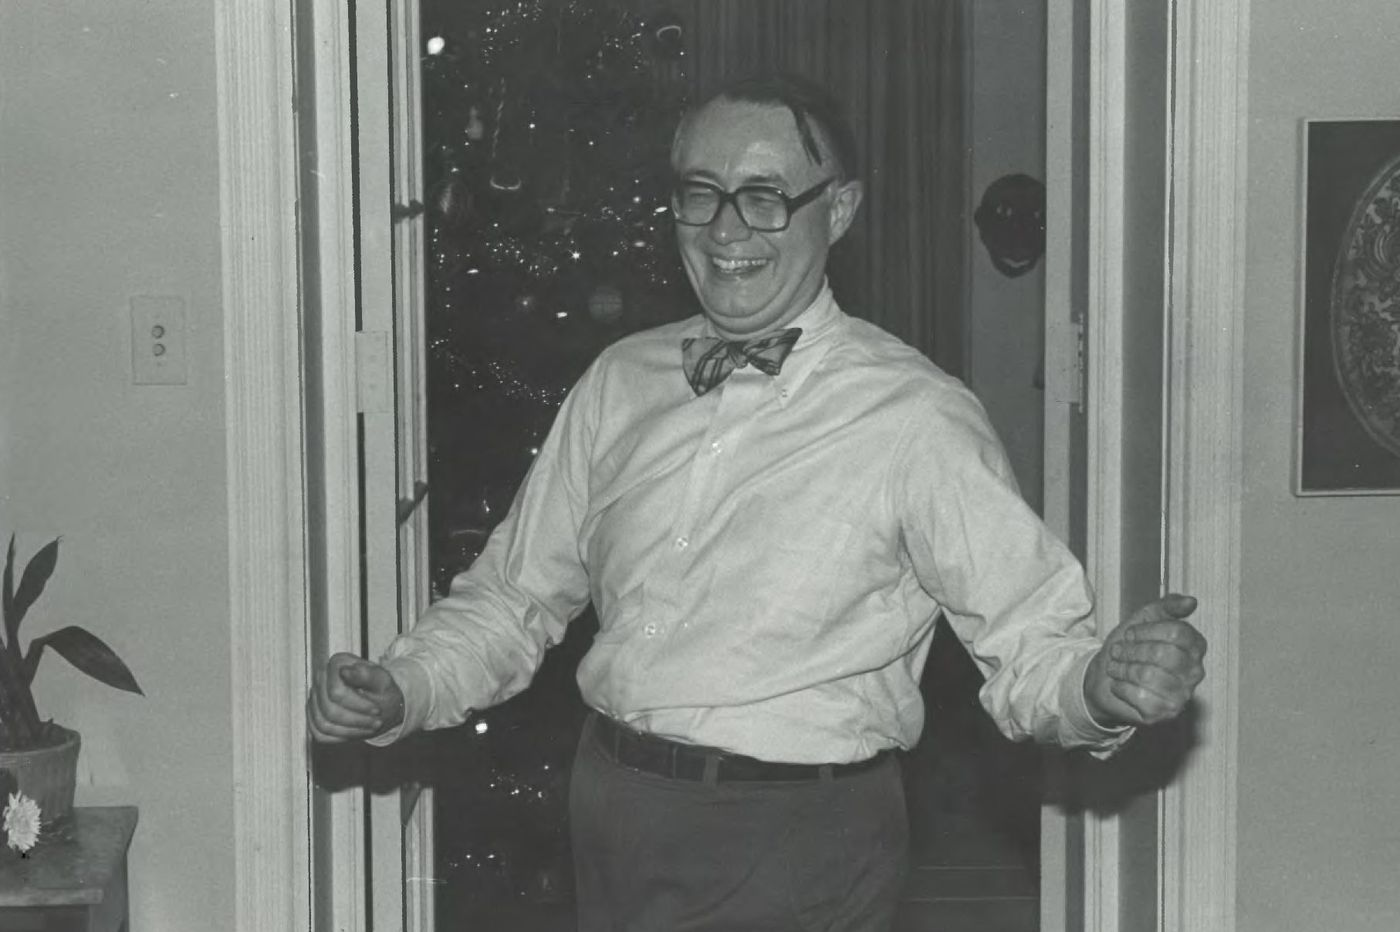 Tom Monteverde, 91, was prominent Philly lawyer